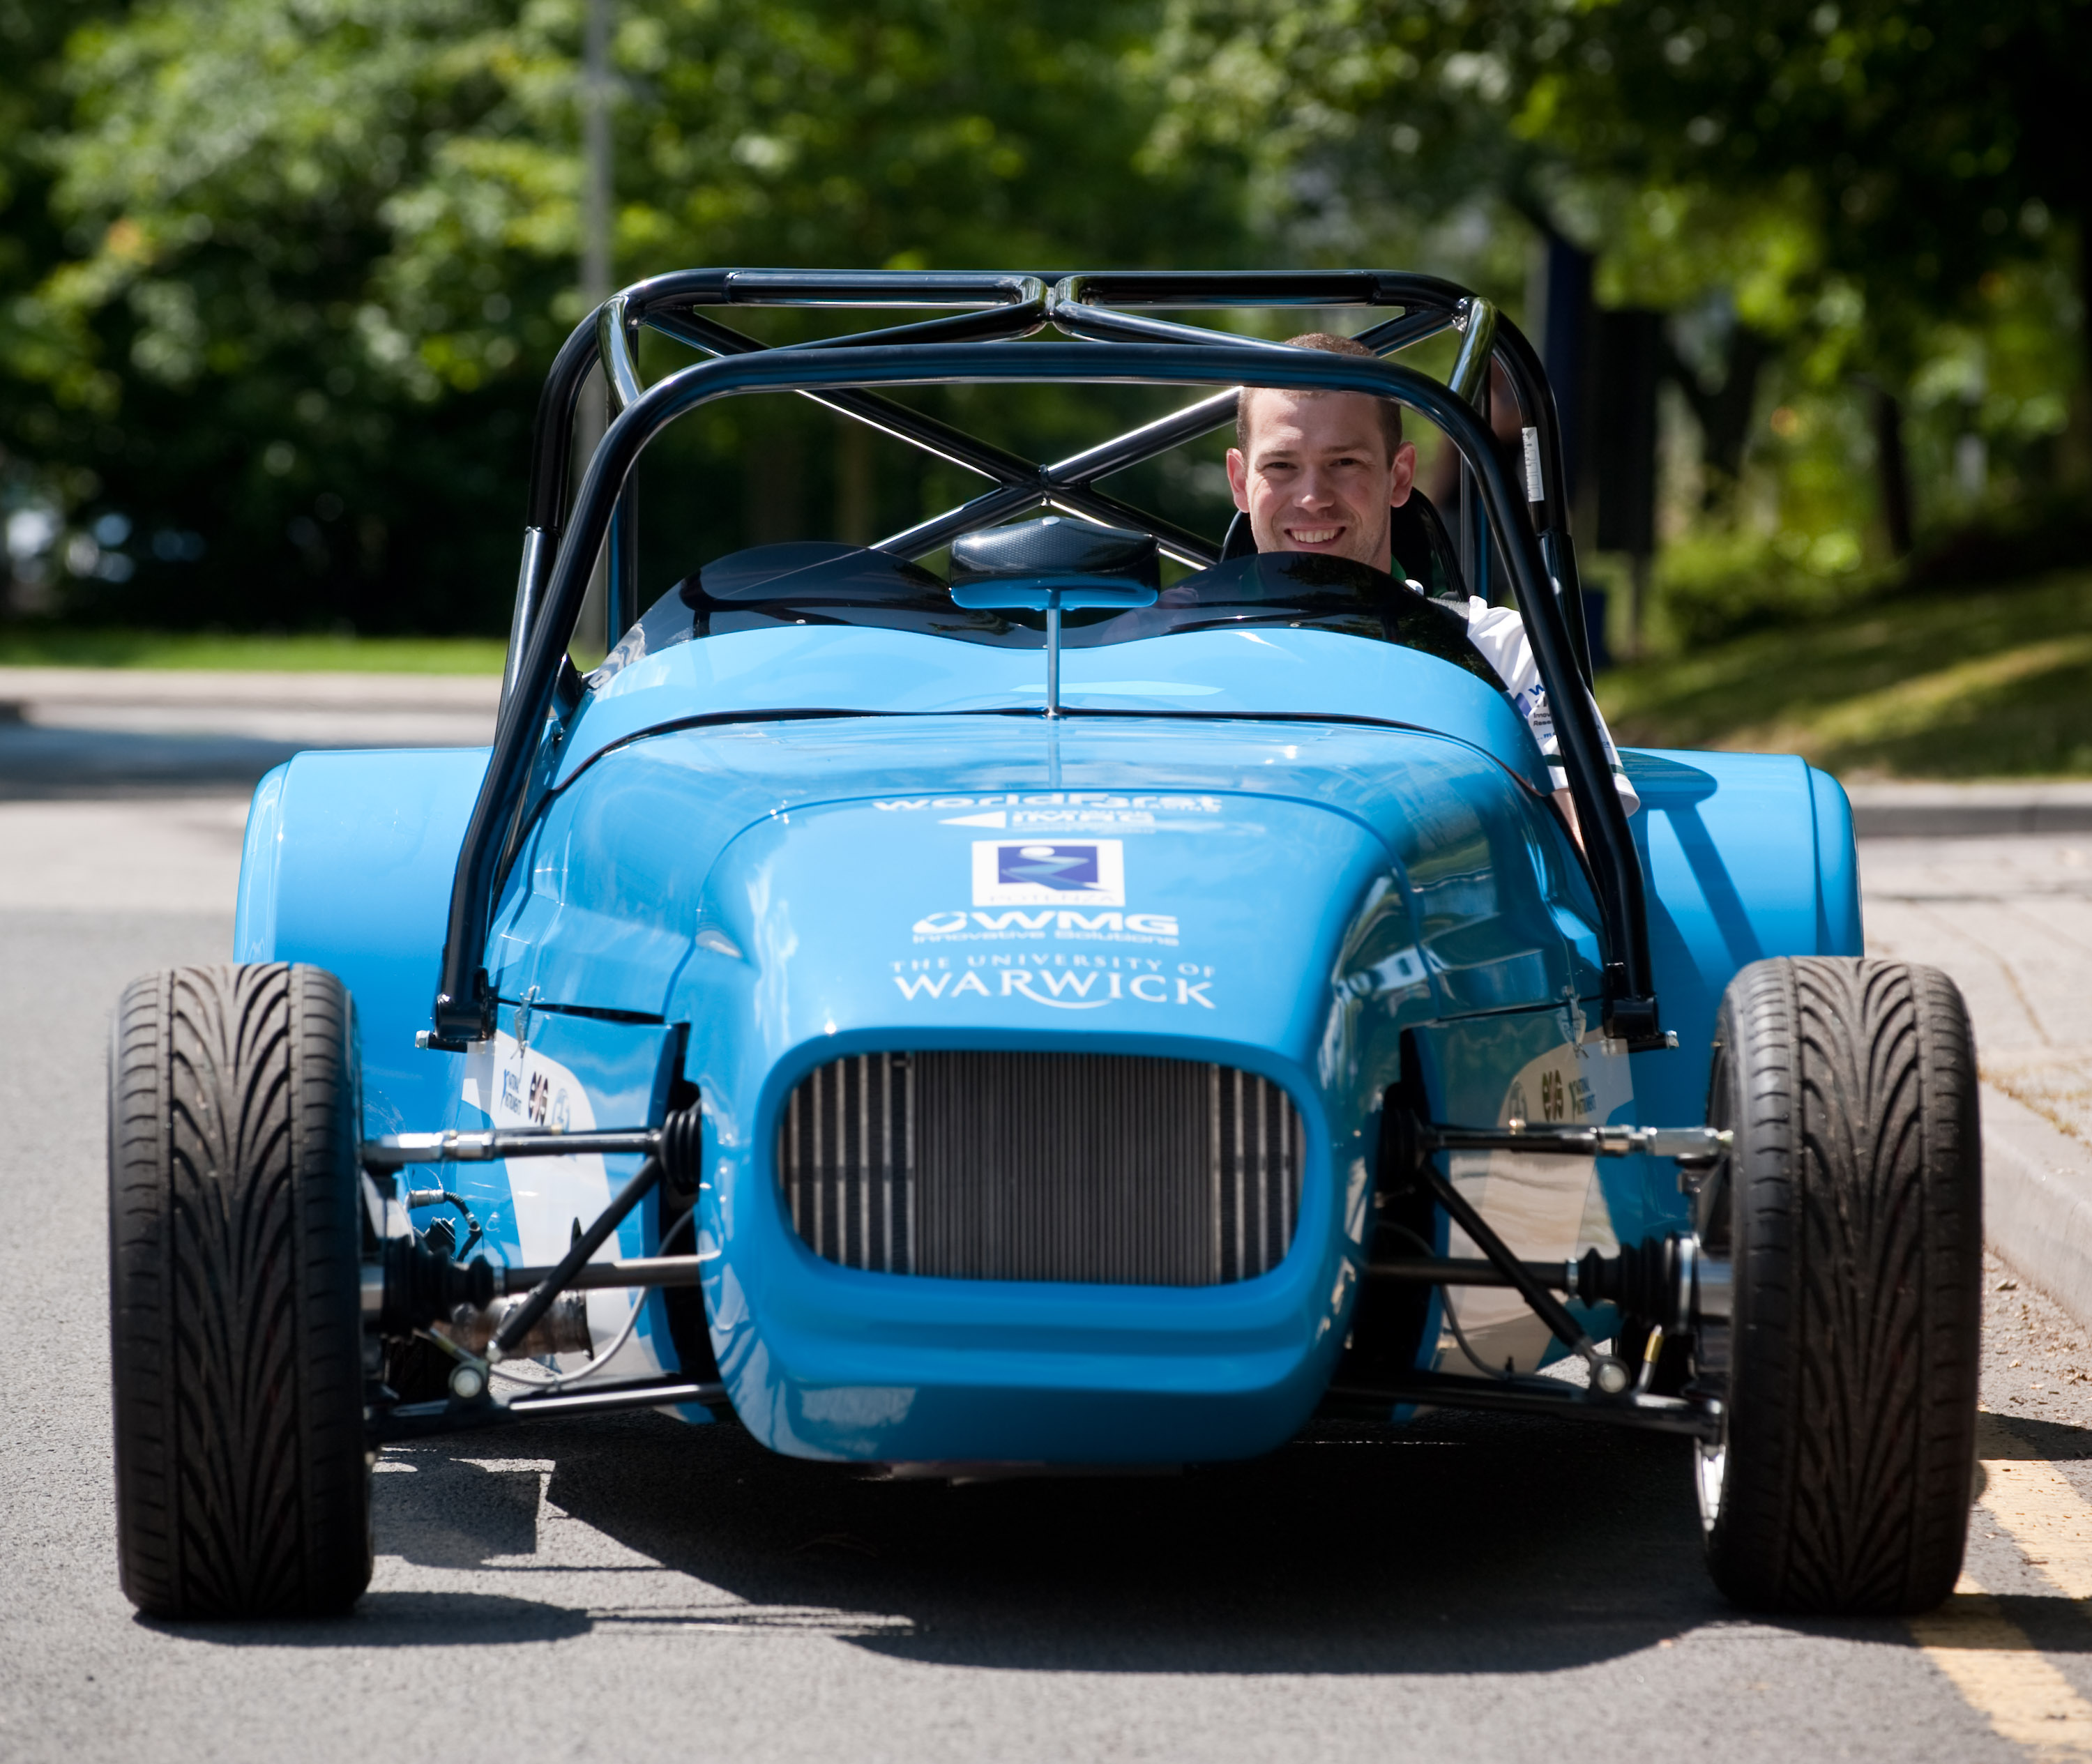 WorldFirst Hybrid Westfield Racing Car Launches At